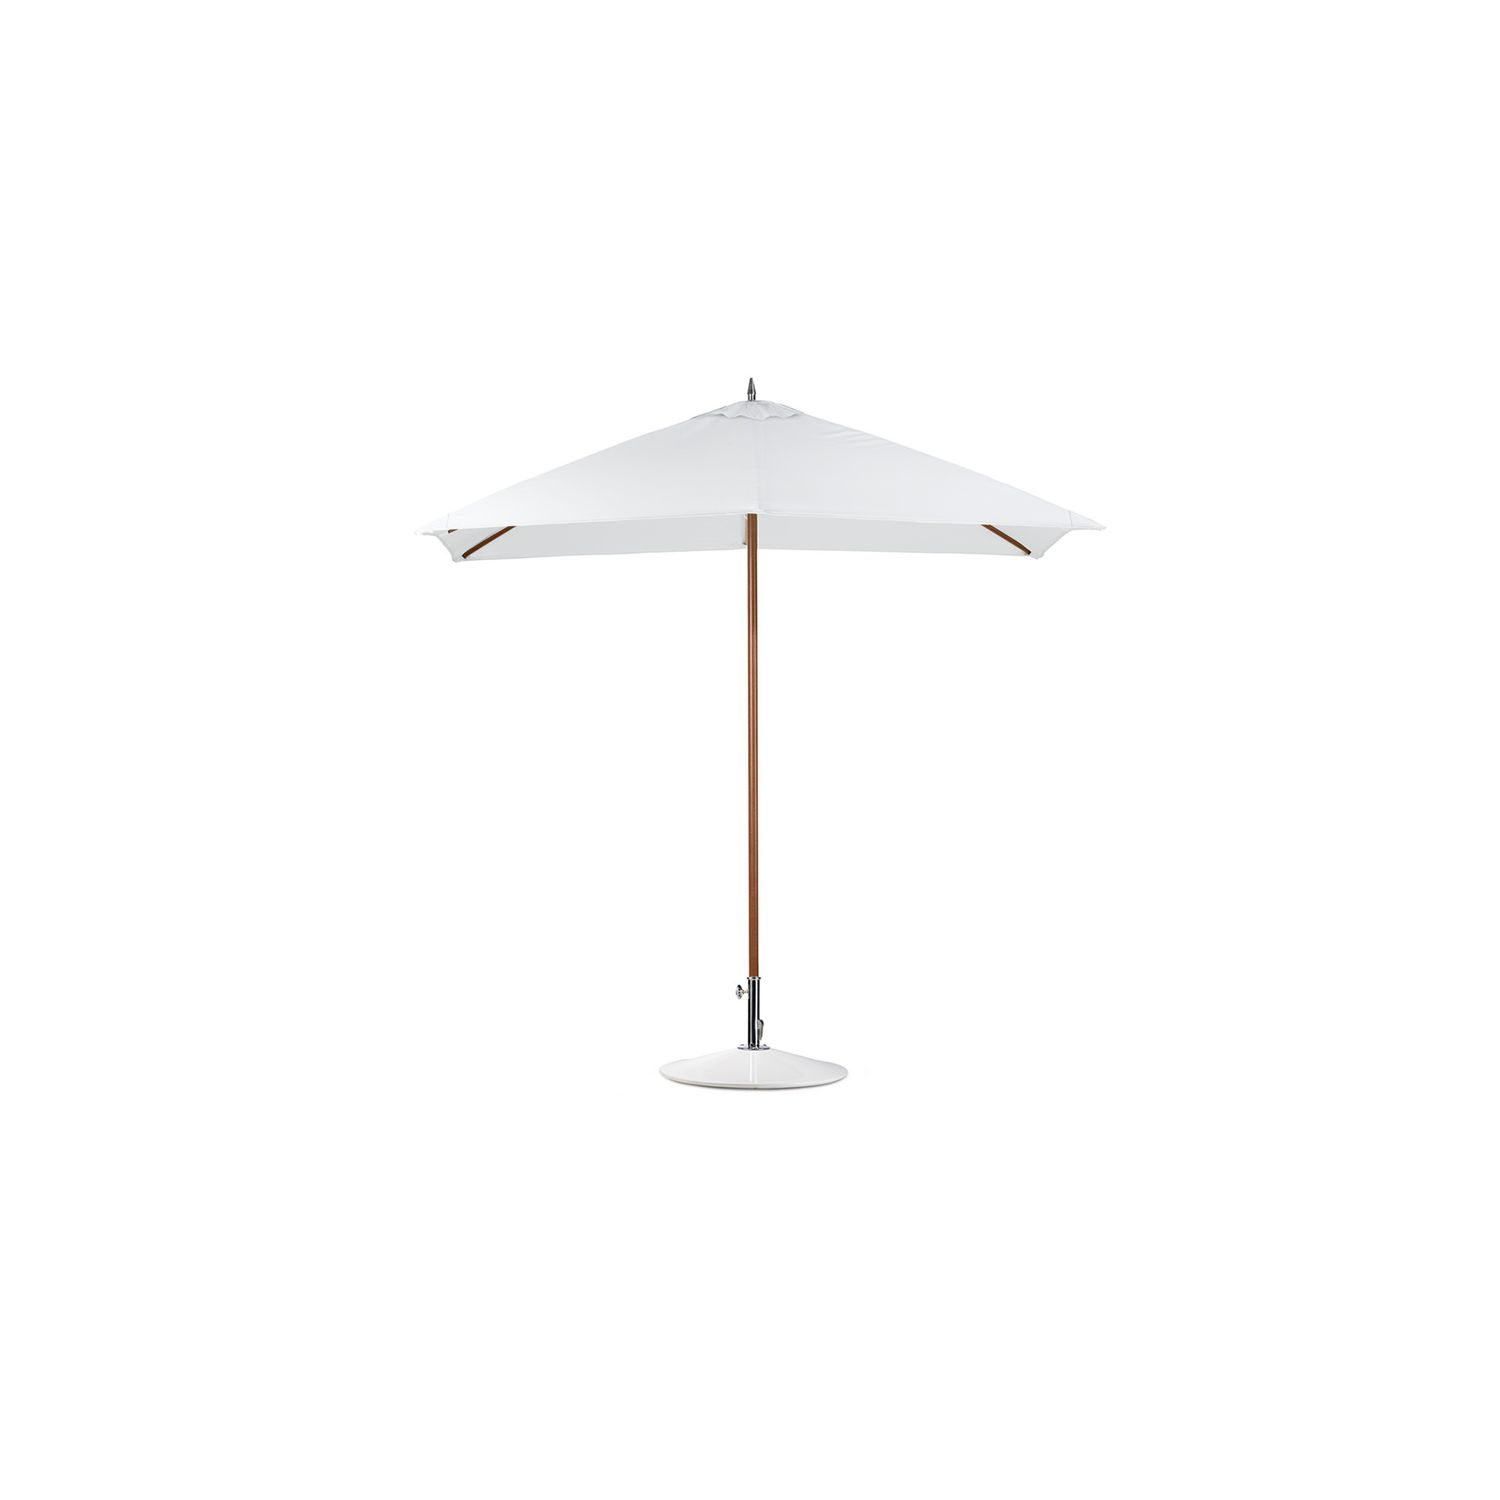 Hotel patio umbrella for bars fabric stainless steel